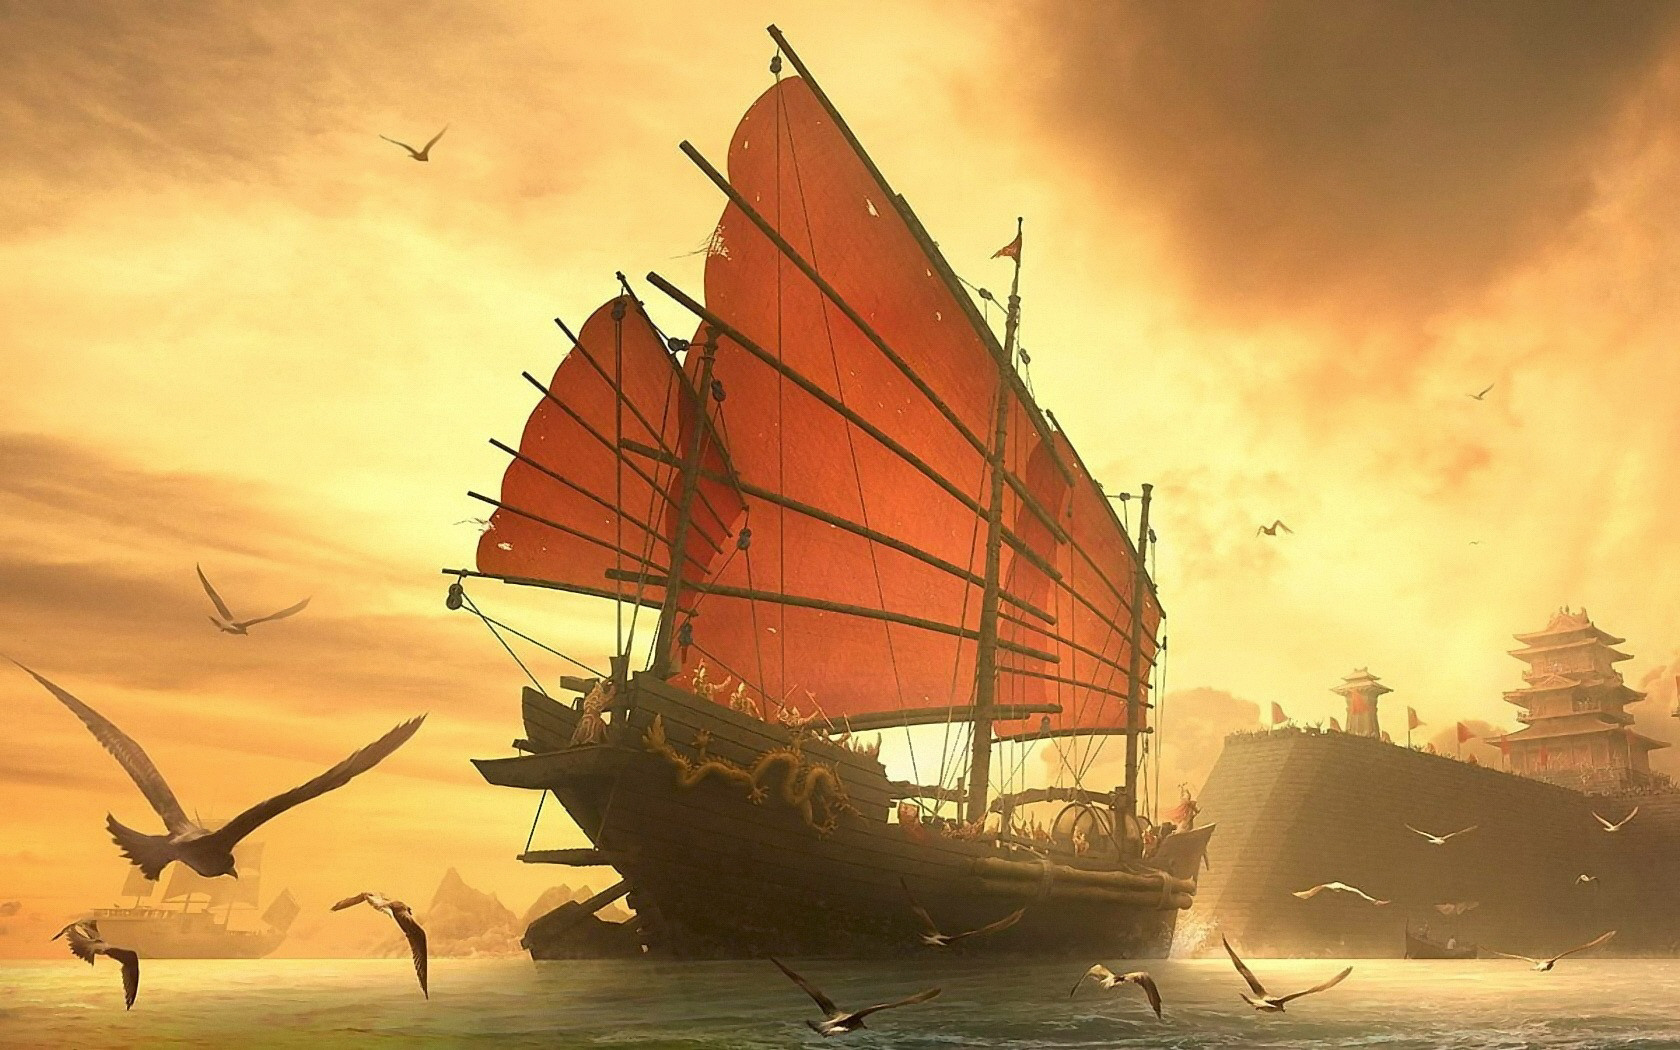 Fantasy Ship Wallpaper